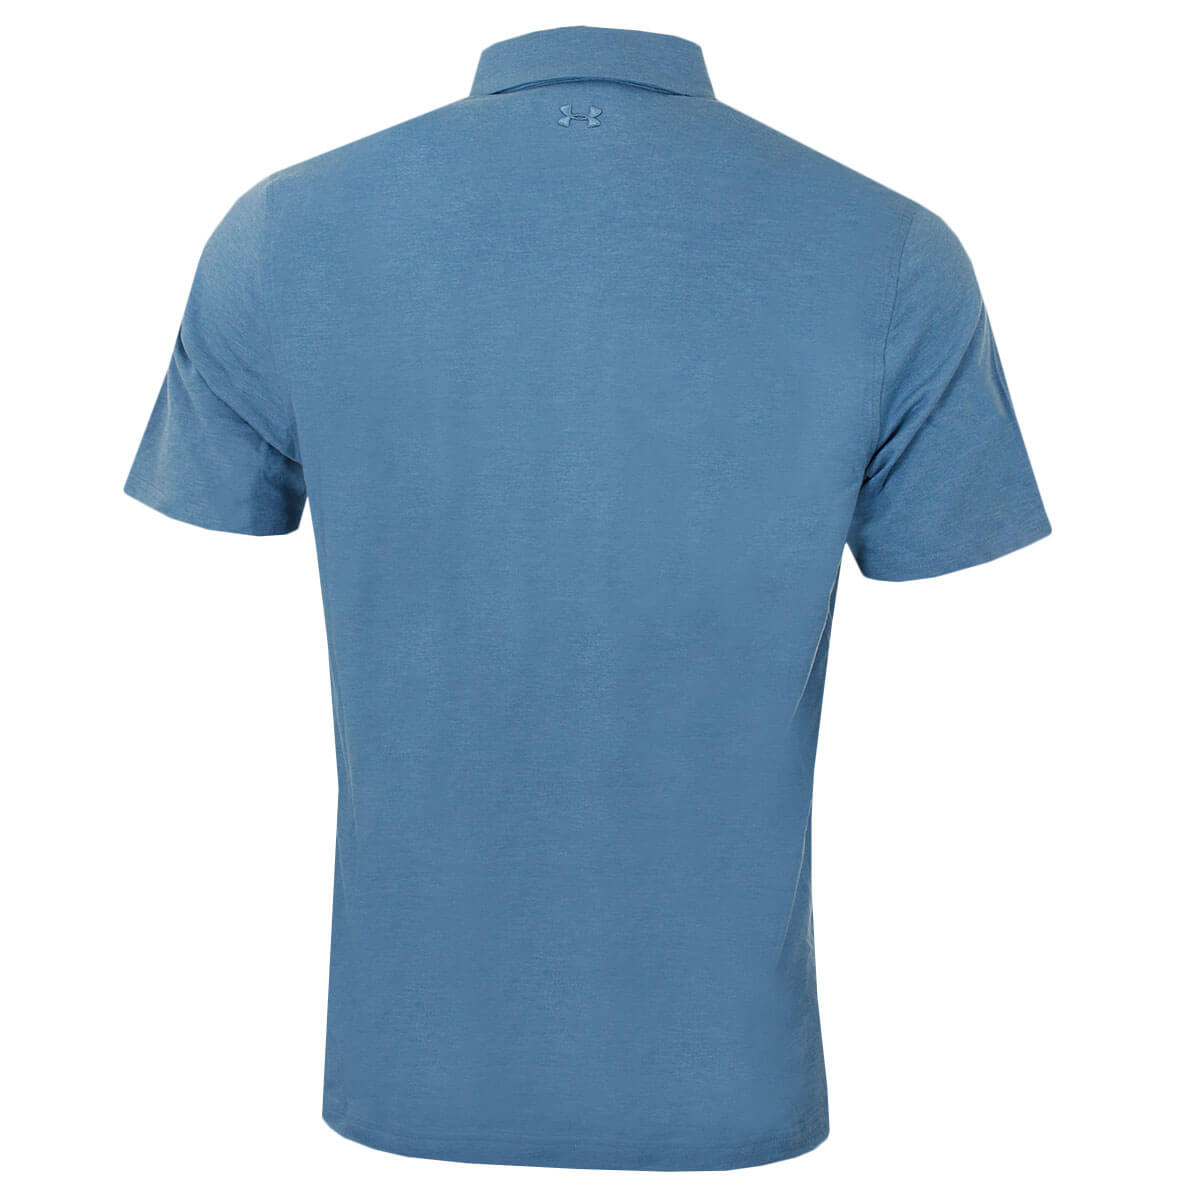 Under-Armour-Mens-2019-CC-Scramble-Charged-Cotton-Stretch-Golf-Polo-Shirt thumbnail 30